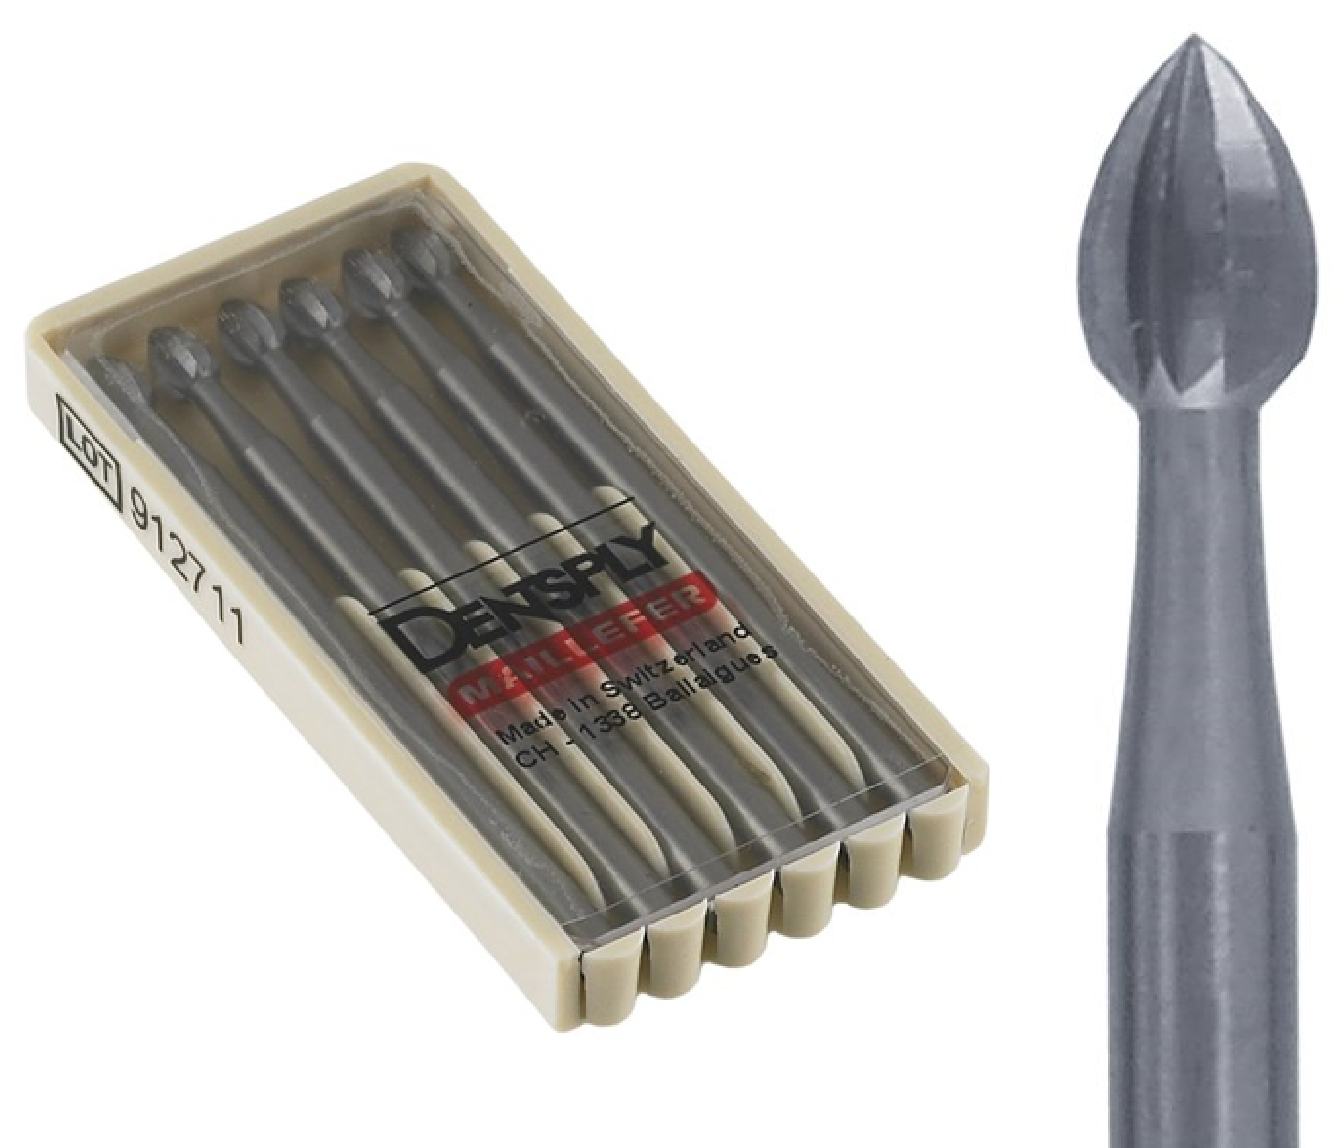 Dentsply Maillefer 6 Pieces Bud Burs 0.8mm 008 Swiss Made Fig 6 Dentsply Maillefer Jewelry Dental at Sears.com